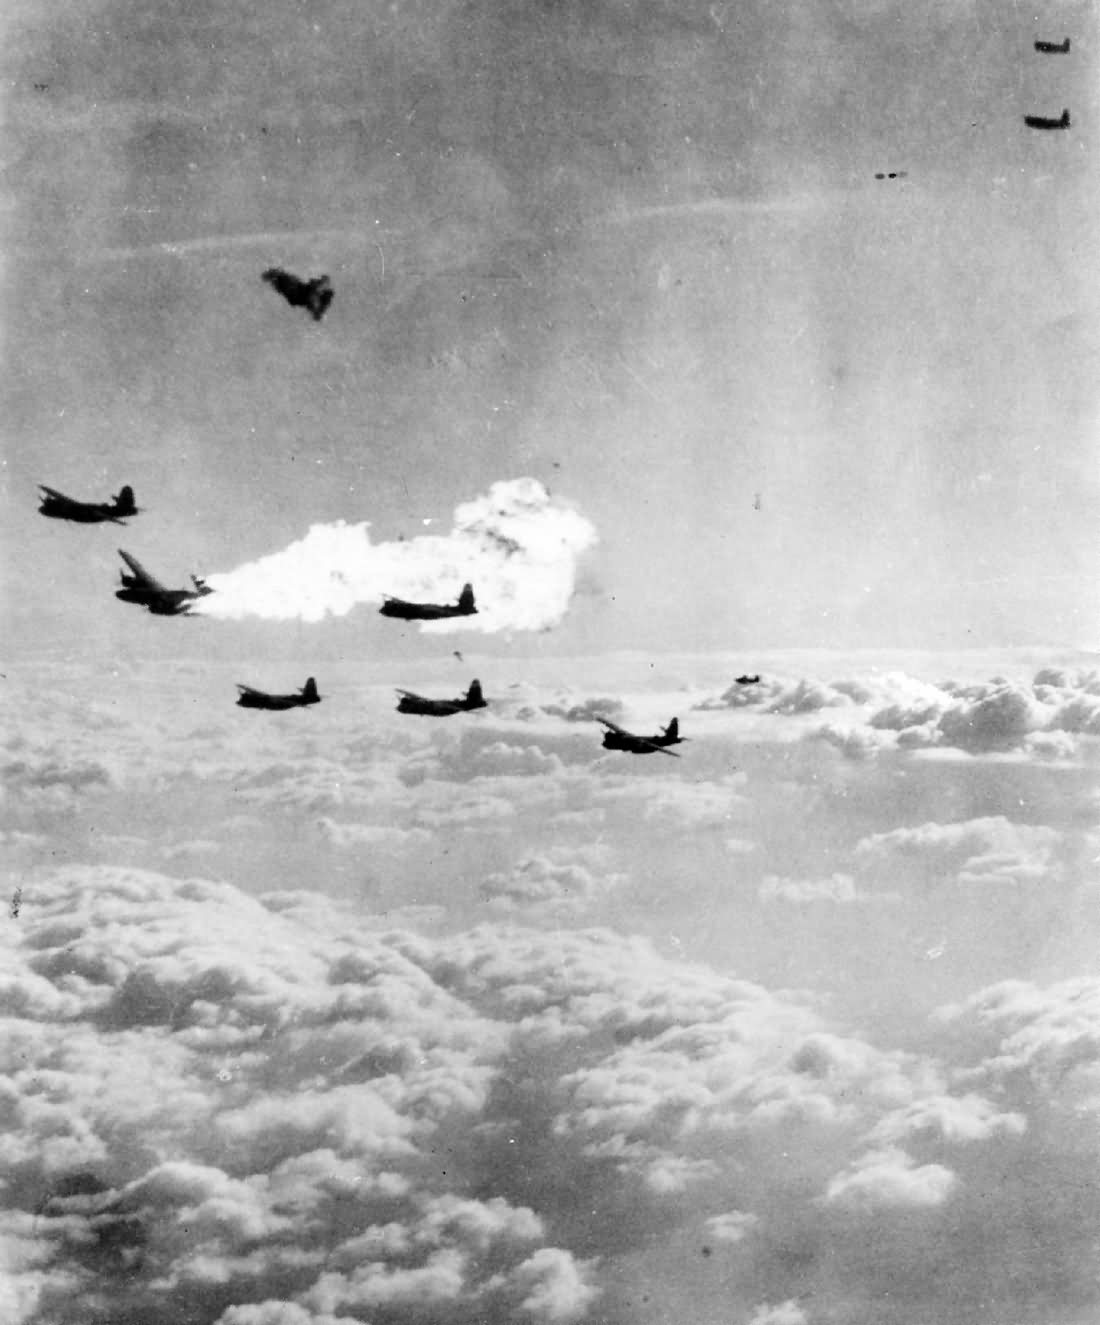 B-26 Marauder Bomber Hit By Flak over France 9th Air Force